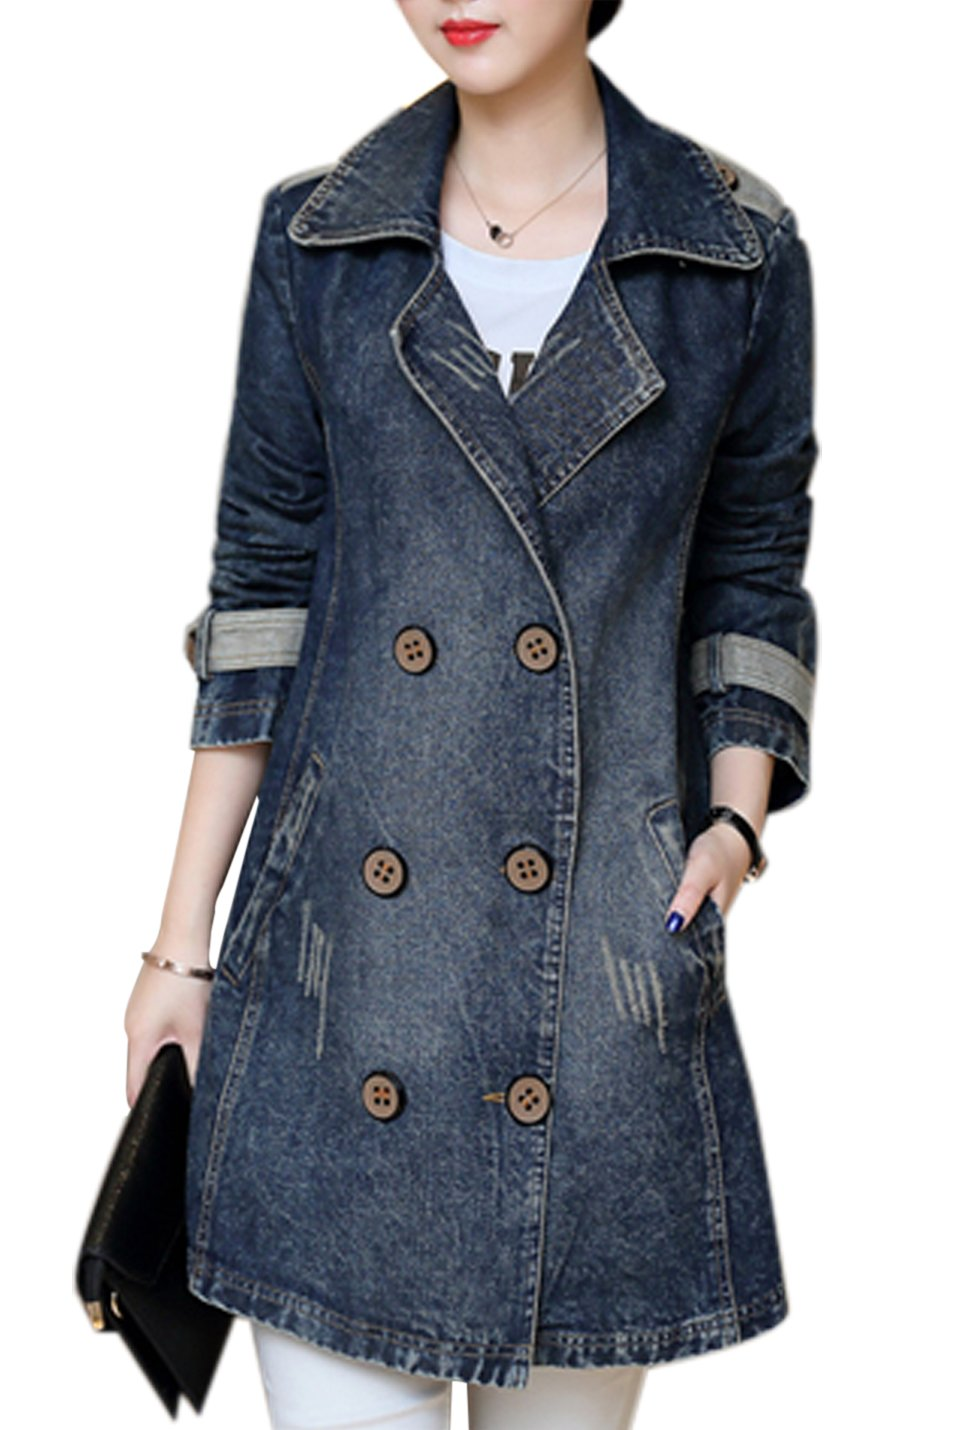 Gihuo Women's Casual Lapel Mid-Long Loose Denim Jacket Double Breasted Trench Coat (X-Large, Dark Blue)